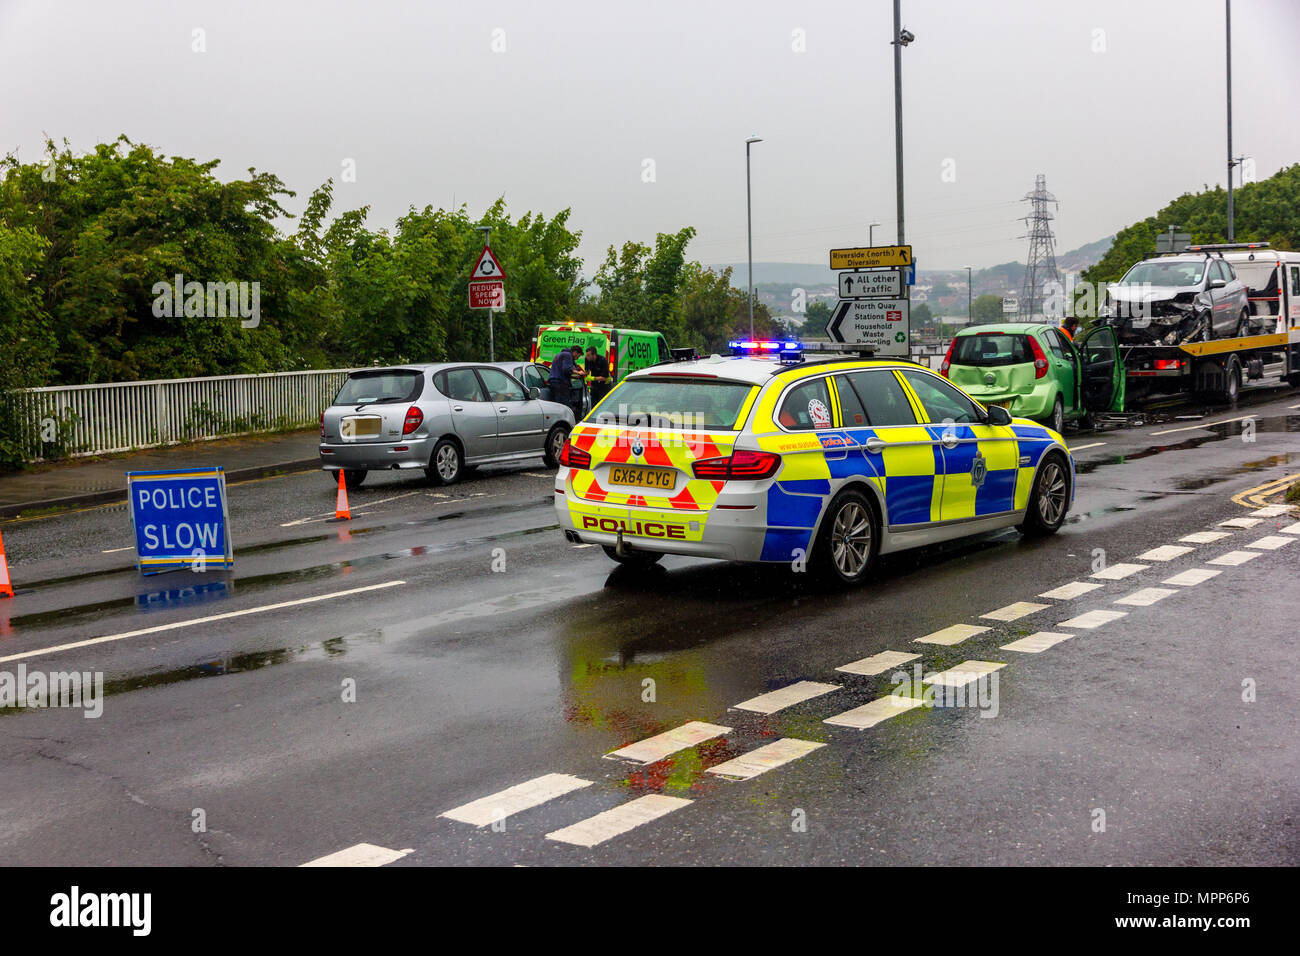 police car sussex stock photos & police car sussex stock images - alamy